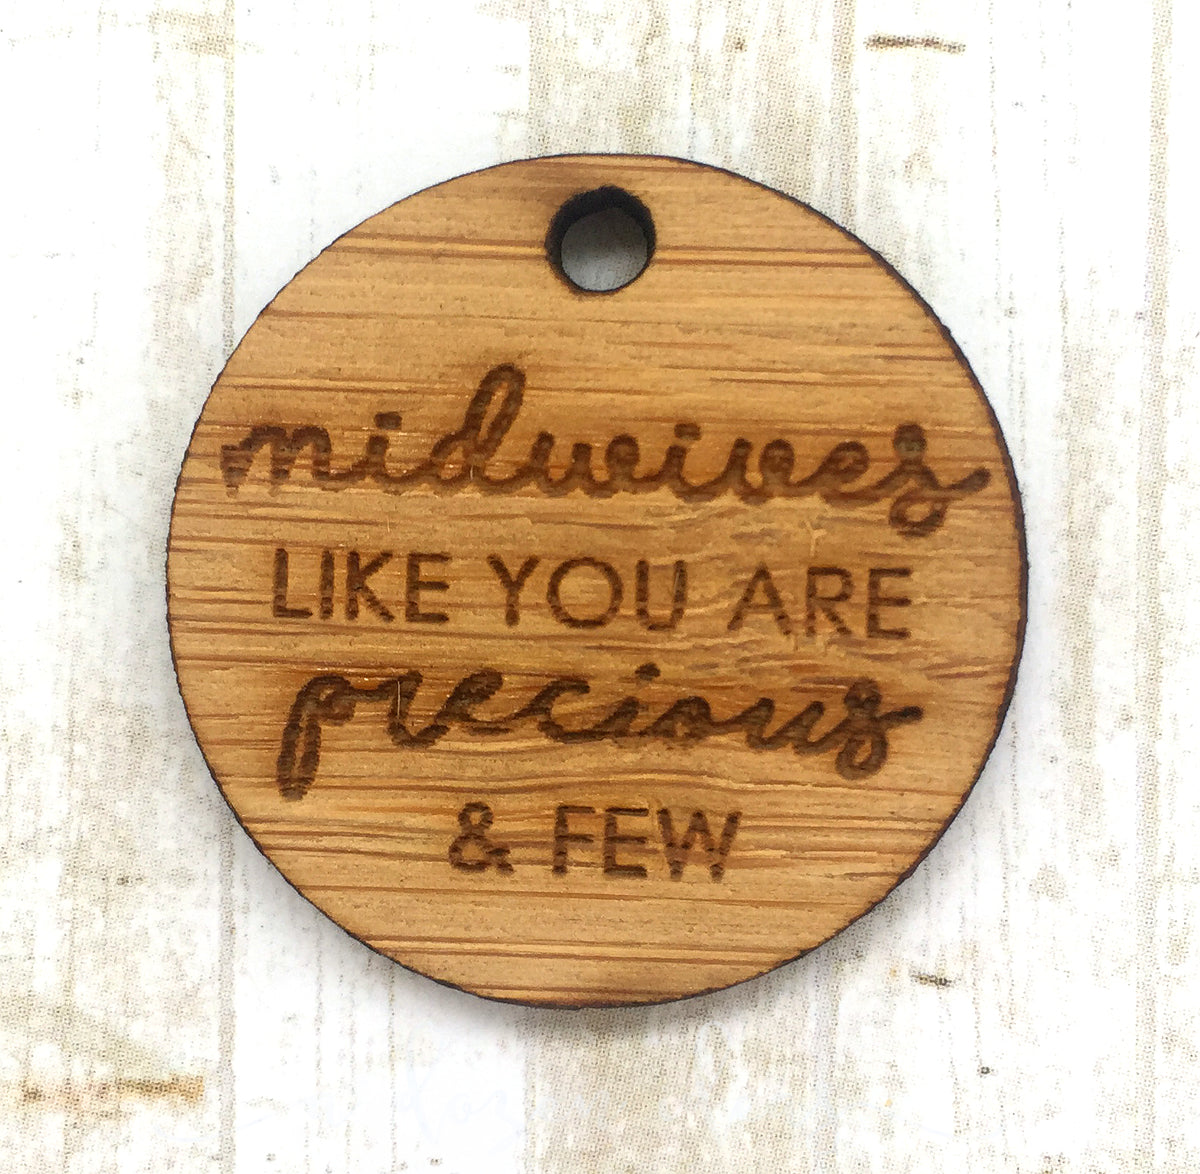 Add-on - Midwives like you are precious